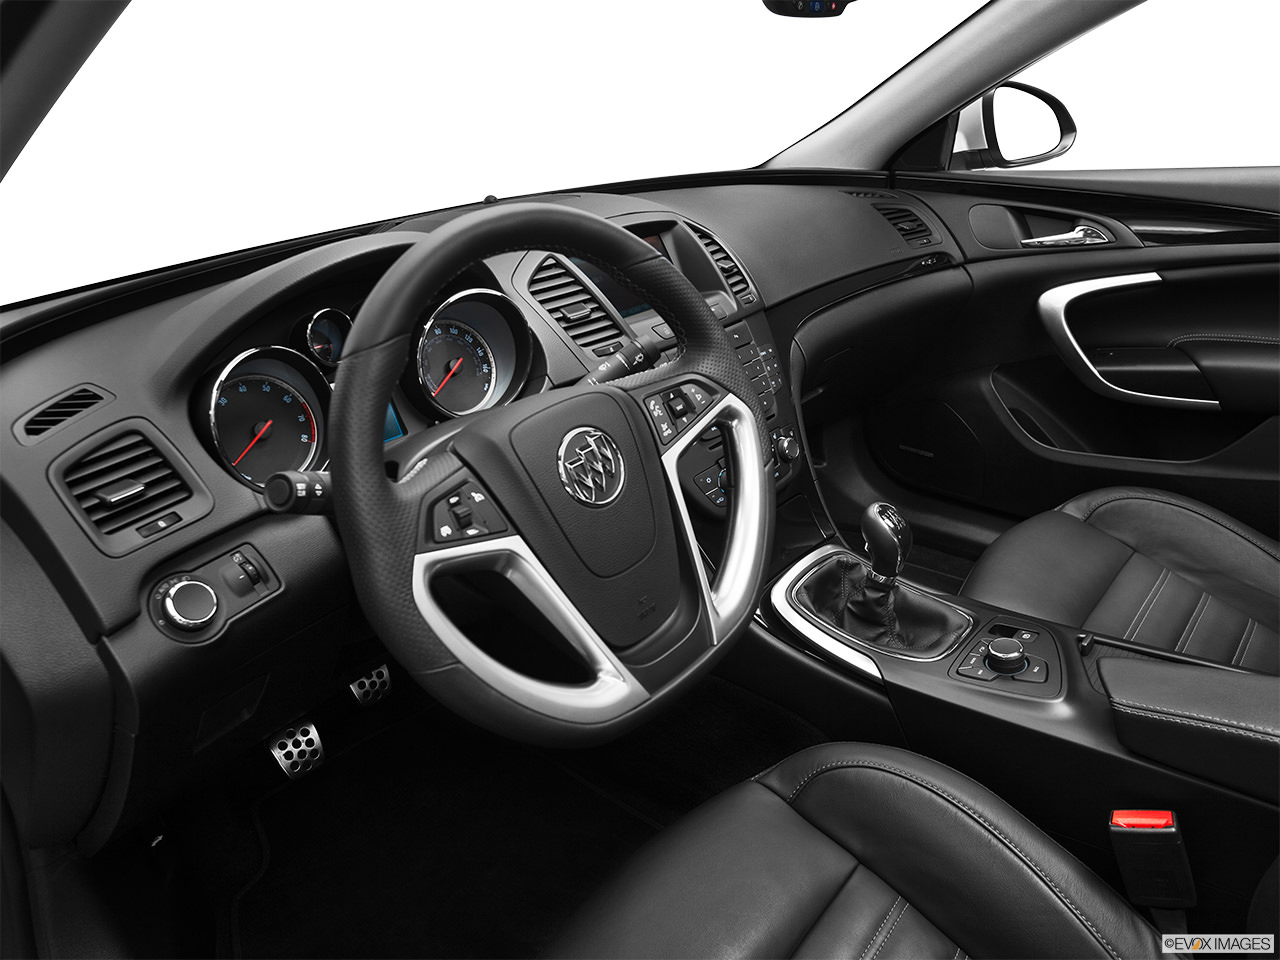 Buick Regal eAssist 2012 Interior